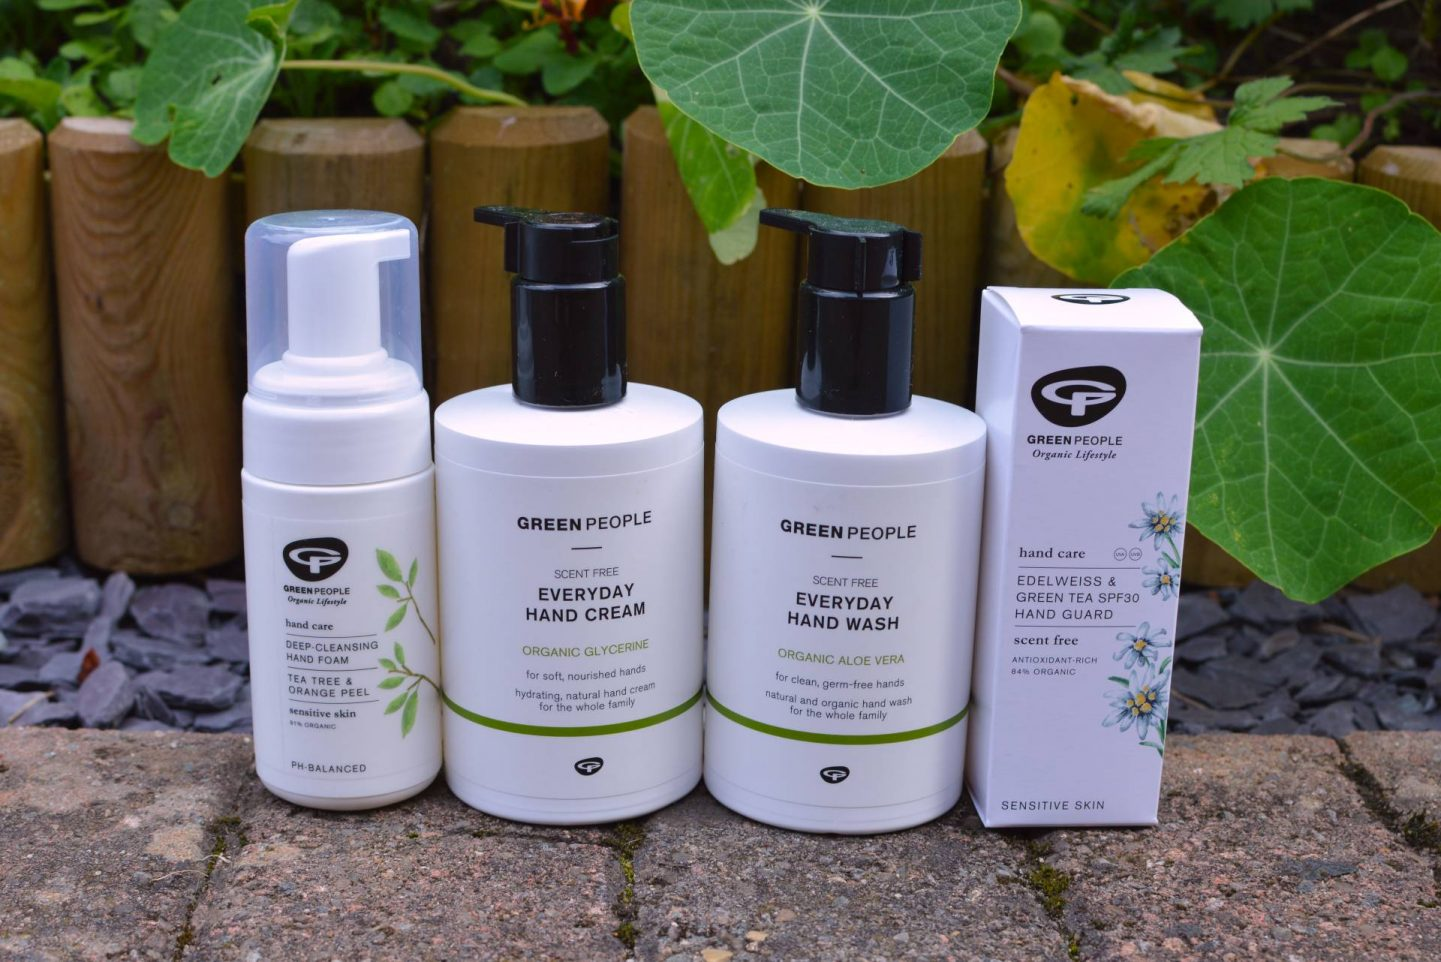 Green People Everyday Hand Cream, Everyday Hand Wash, Edelweiss & Green Tea SPF30 Hand Guard, Hand Cleansing Foam